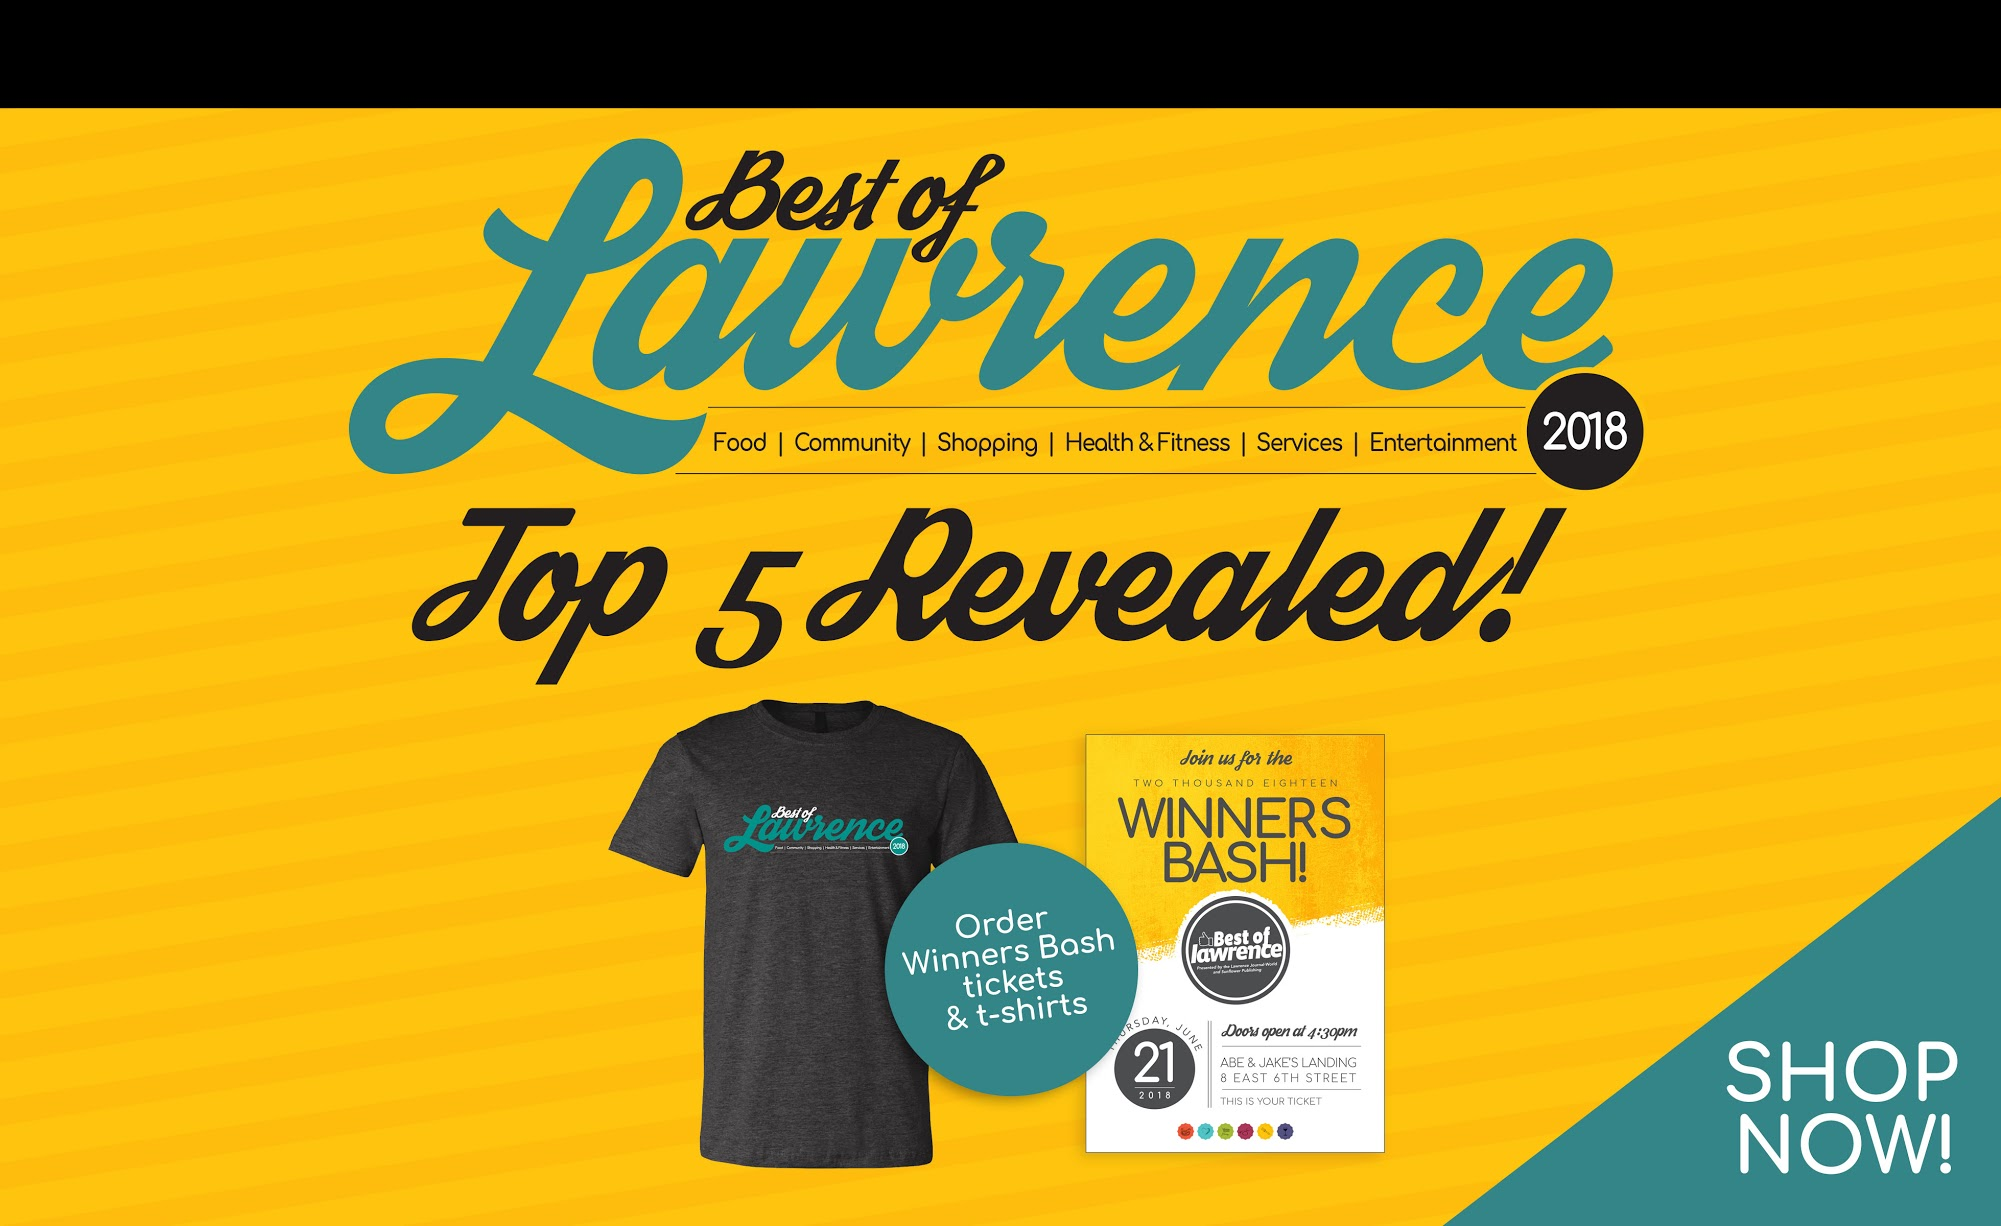 Best of Lawrence 2018: Top 5 Revealed!